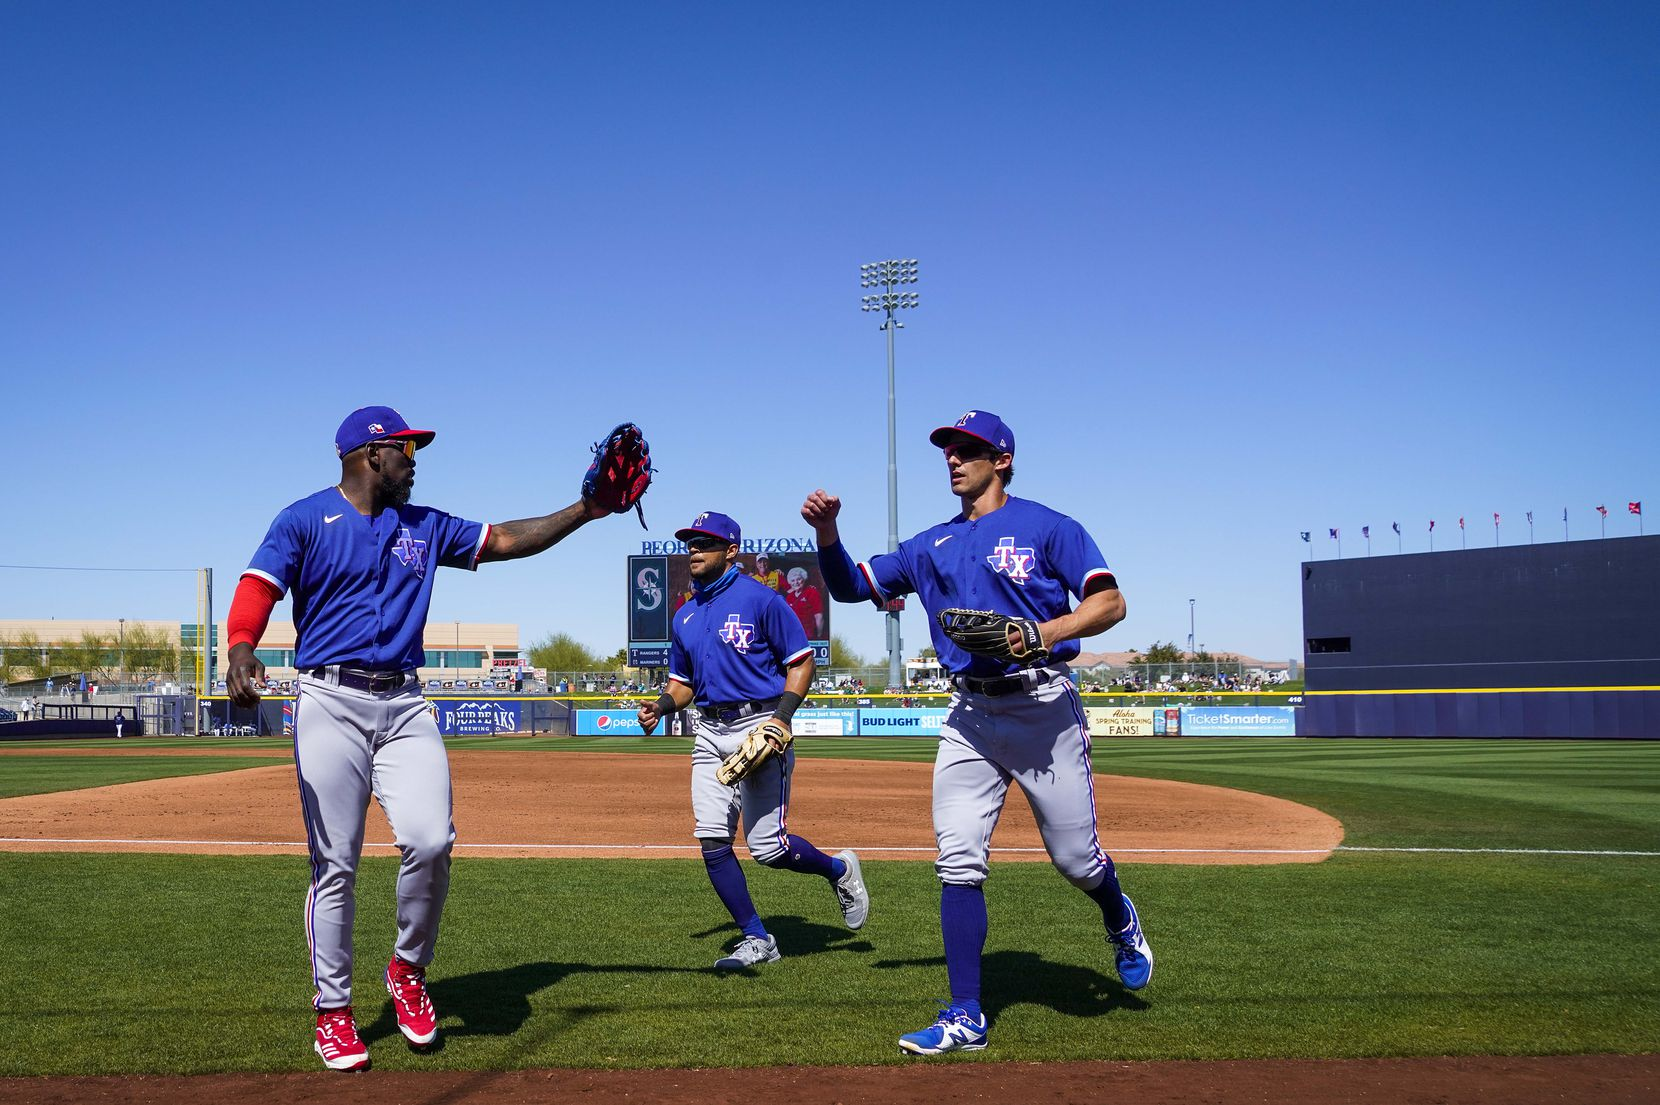 Texas Rangers center fielder Eli White (right) gets a hand from right fielder Adolis García as they leave the field with left fielder Jason Martin (center) after White made a running catch on a line drive by Seattle Mariners first baseman Jose Marmolejos to end the first inning of a spring training game at Peoria Sports Complex on Wednesday, March 10, 2021, in Peoria, Ariz.